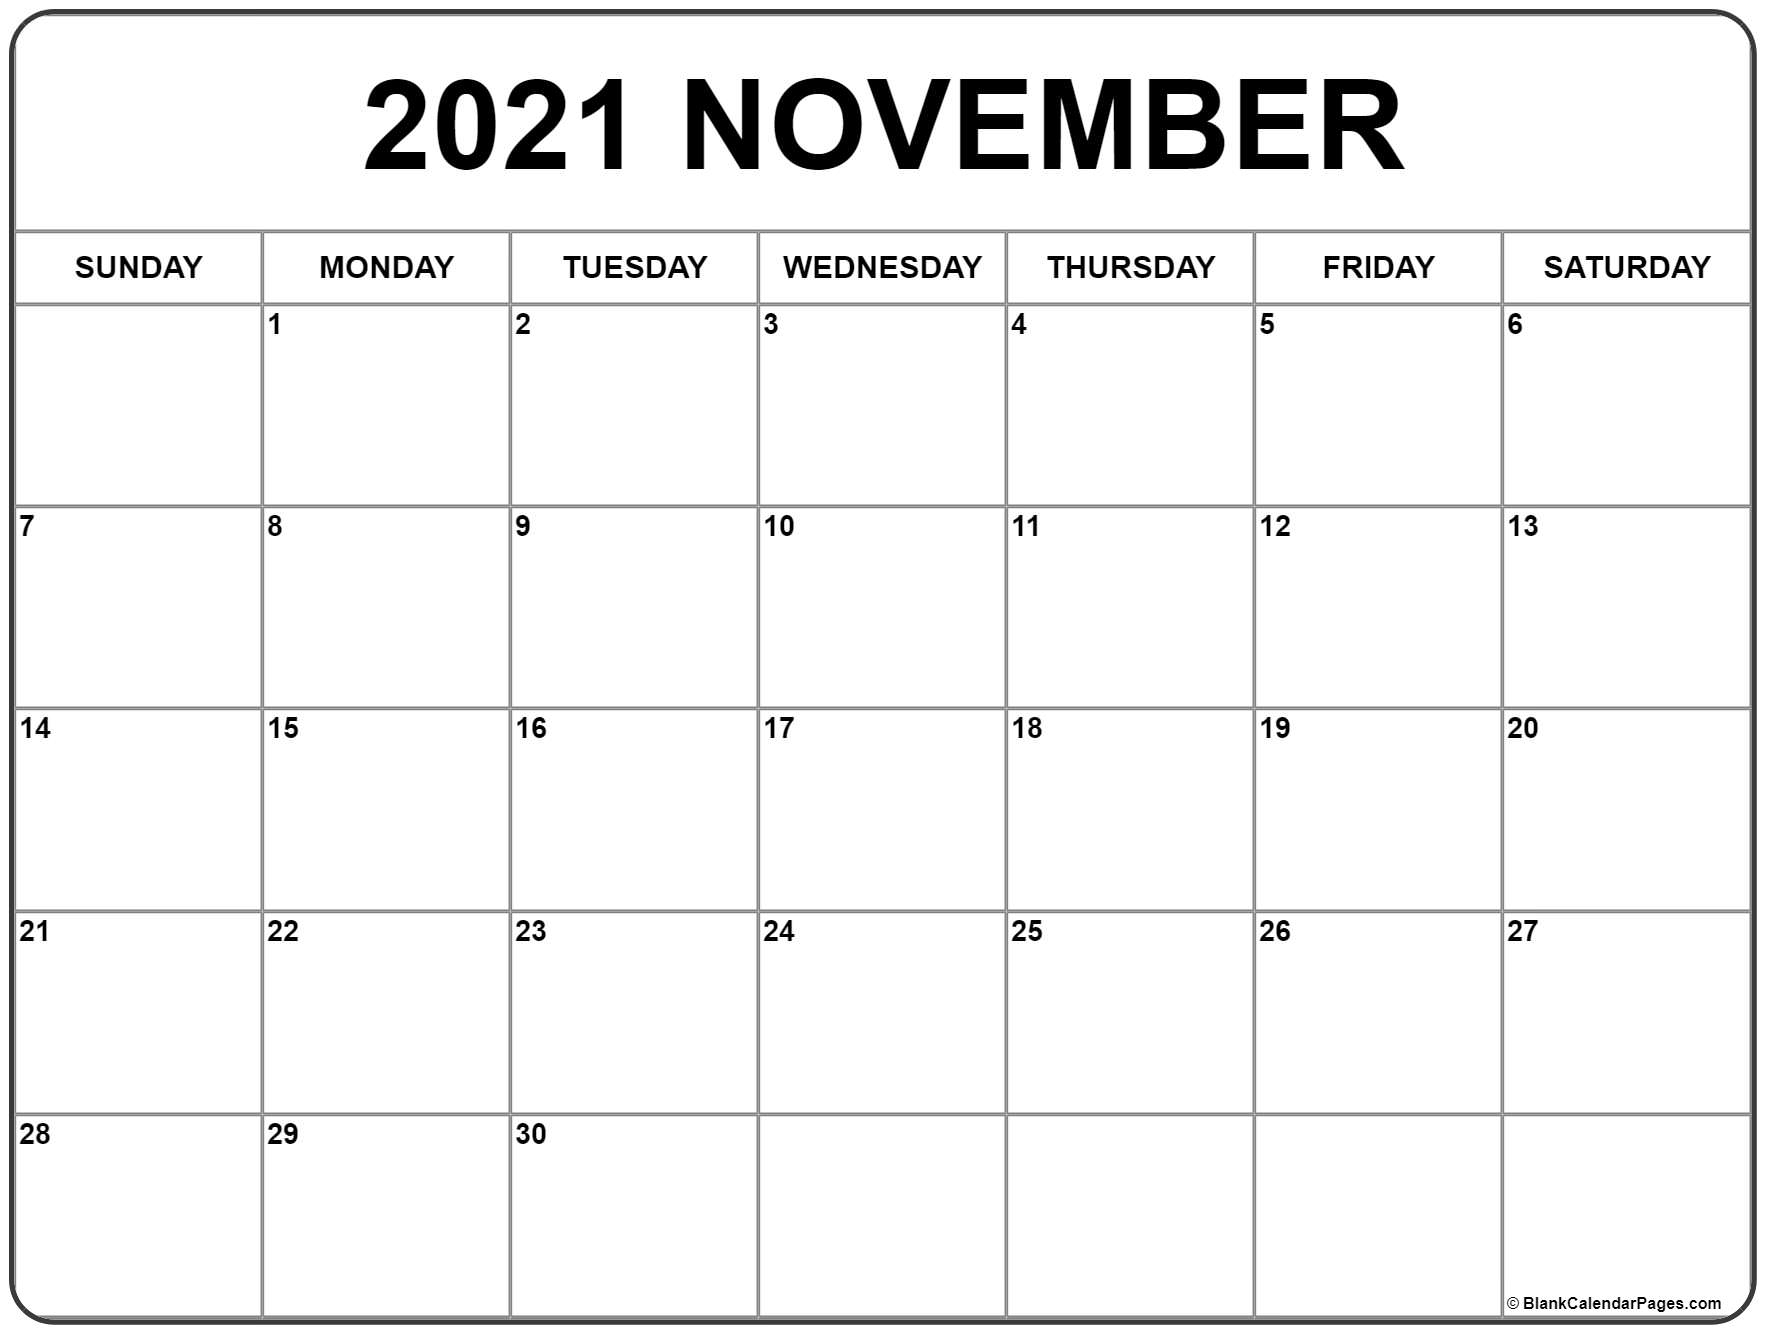 Catch November 2021 Full Moon